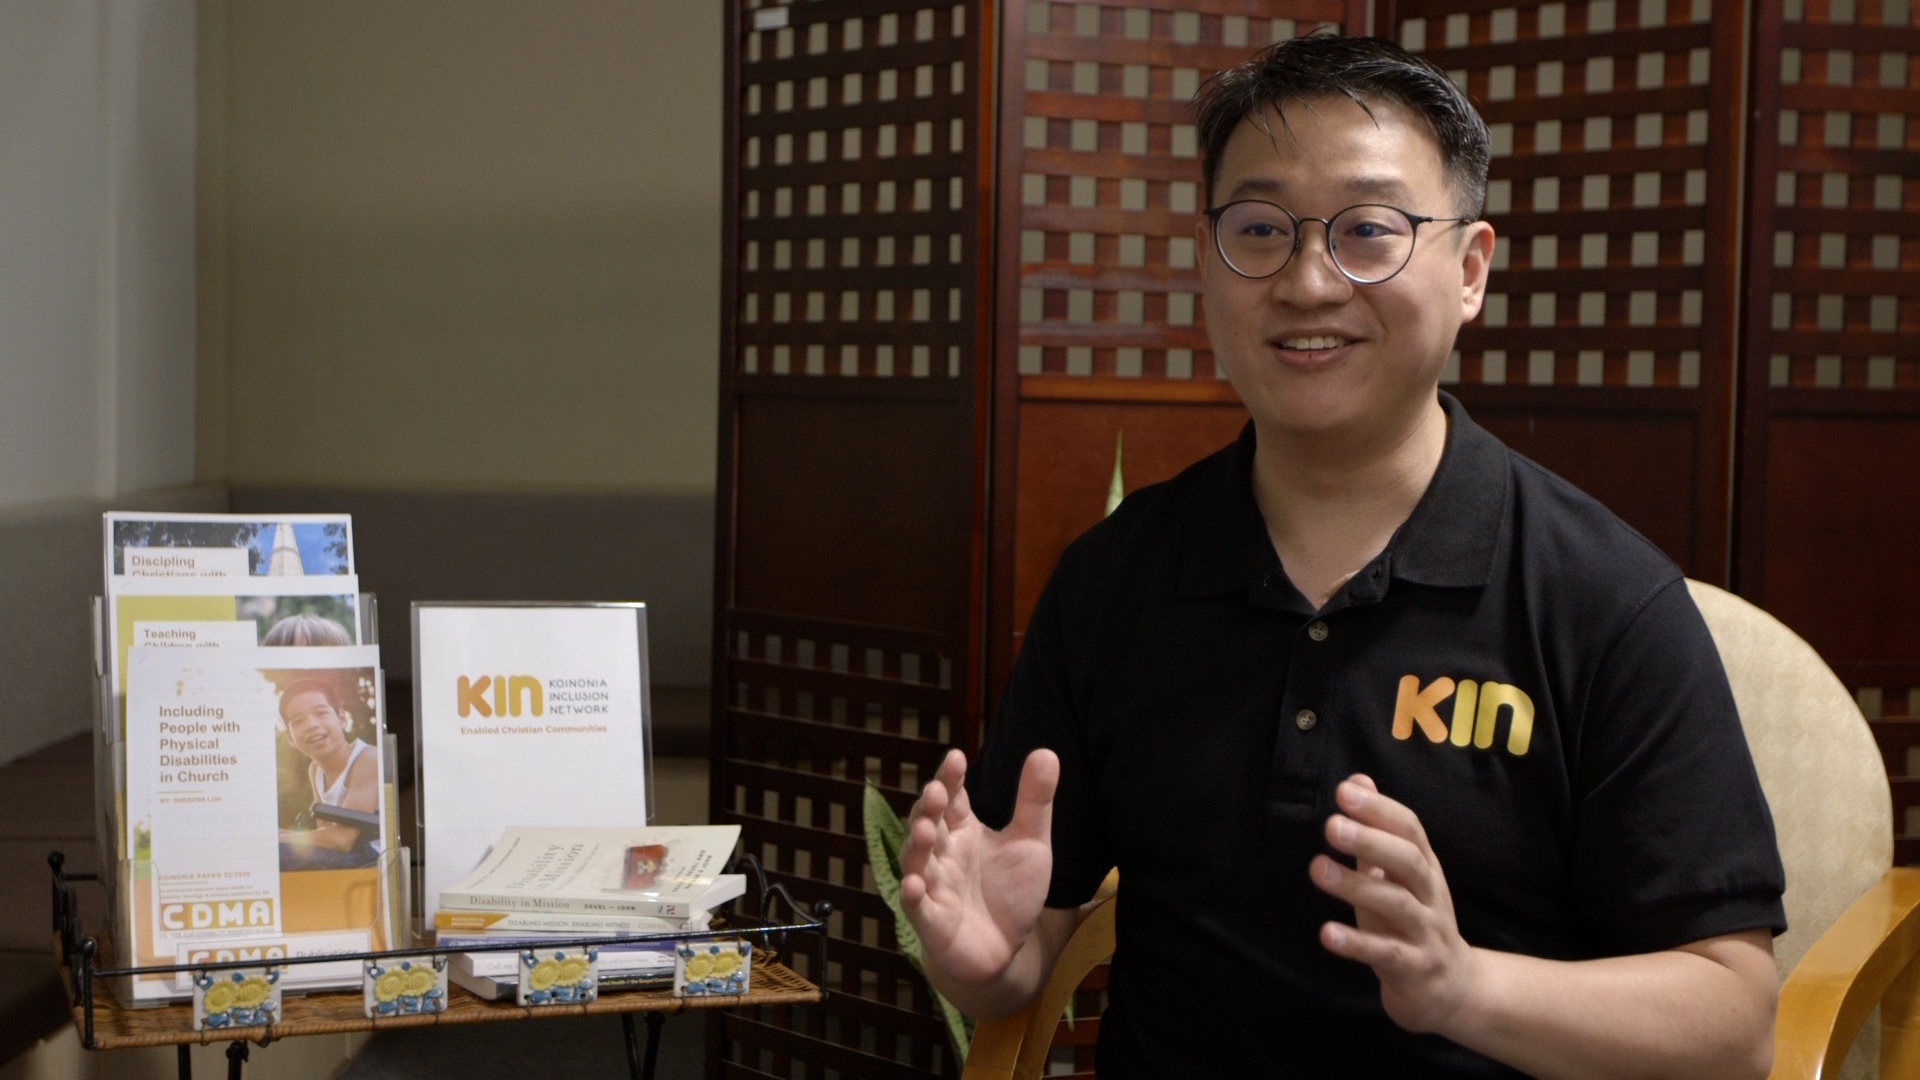 Koinonia Inclusion Network, or KIN, is built on the firm conviction that people with disabilities are not burdens or inconveniences, but valuable individuals who are integral to the Church, said president Leow Wen Pin. Photo courtesy of Leow Wen Pin.